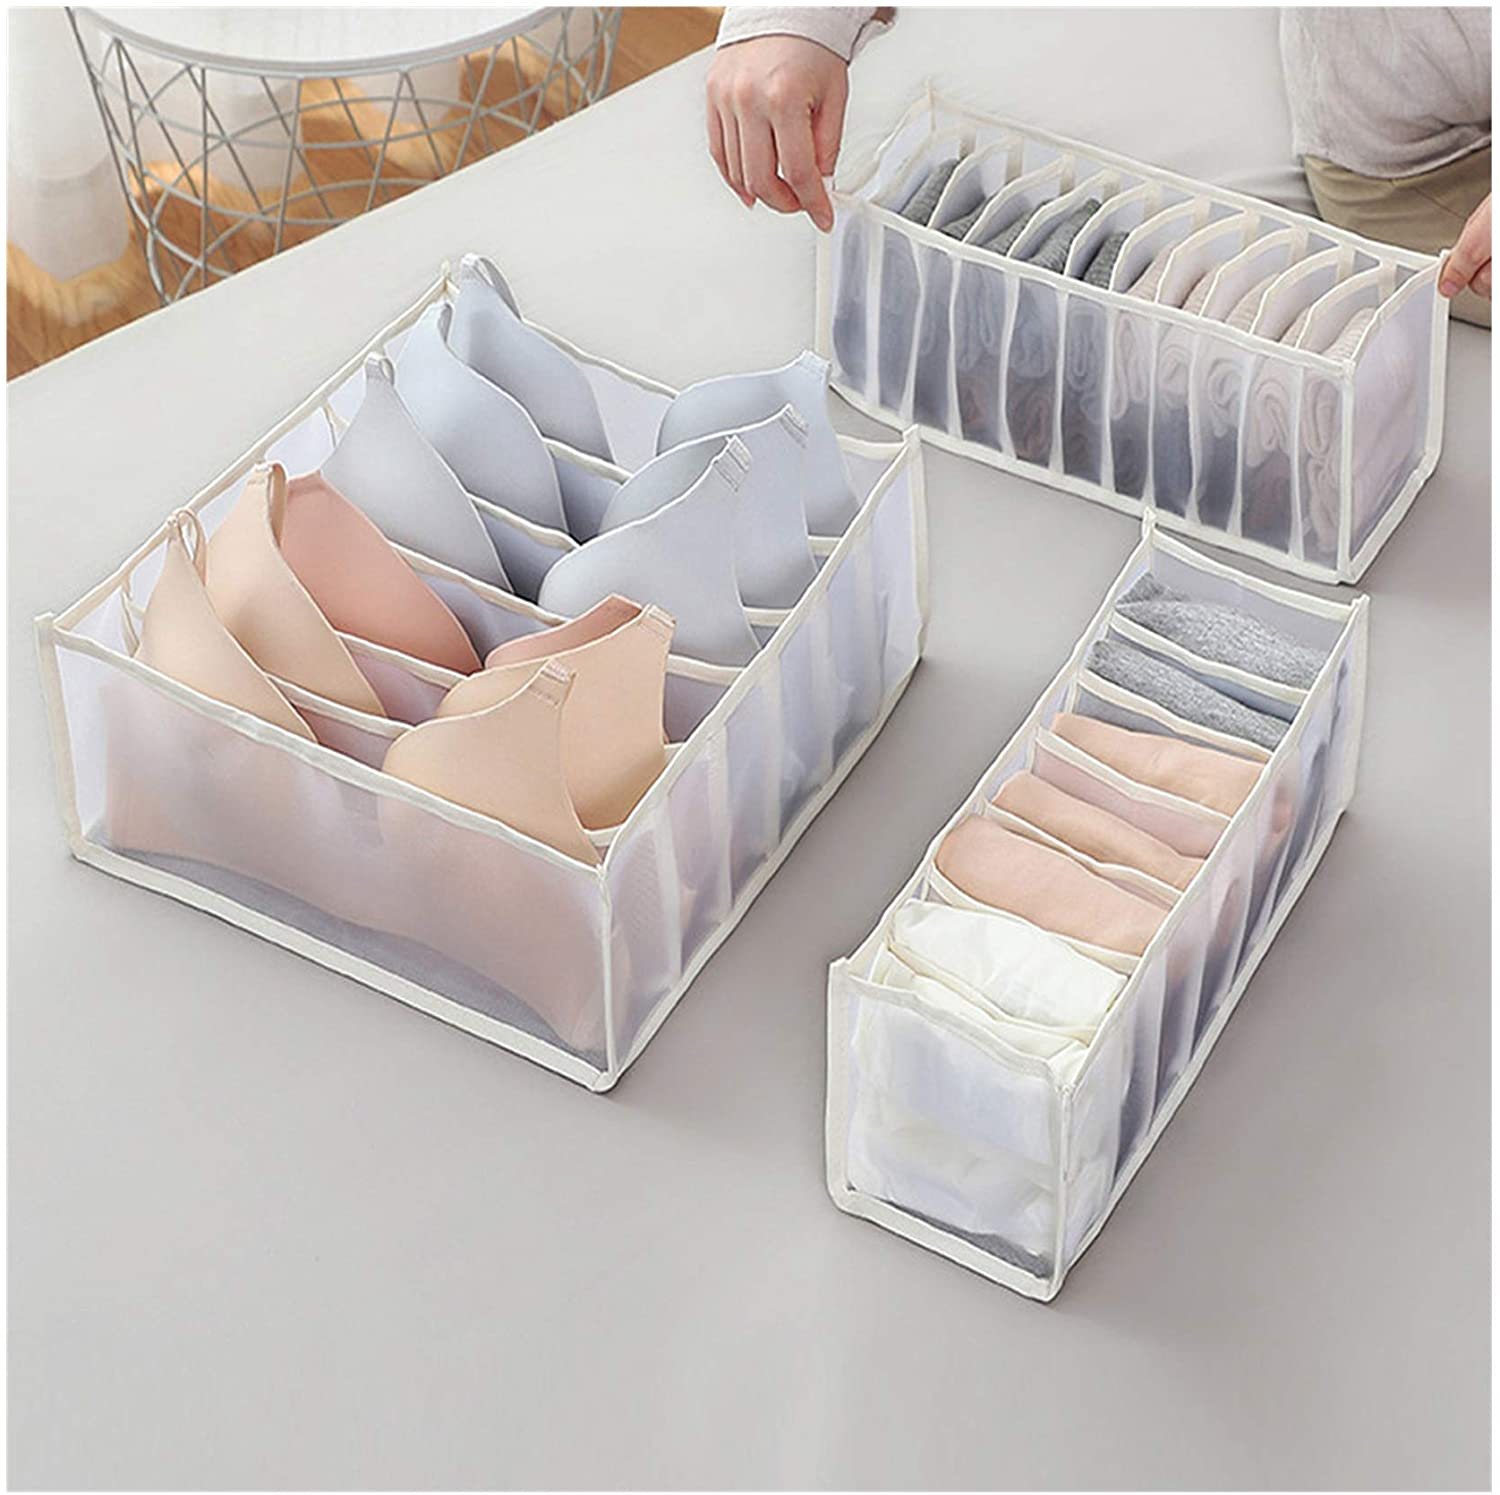 GXGG Closet Underwear Organizer Drawer Divider for Women, Bra Organizing Set of 3 Includes 6+7+11 Cell Lightweight Mesh Bins, Better for Sorting Storage (CupA-D) Lingerie, Panties, Socks (A-White)